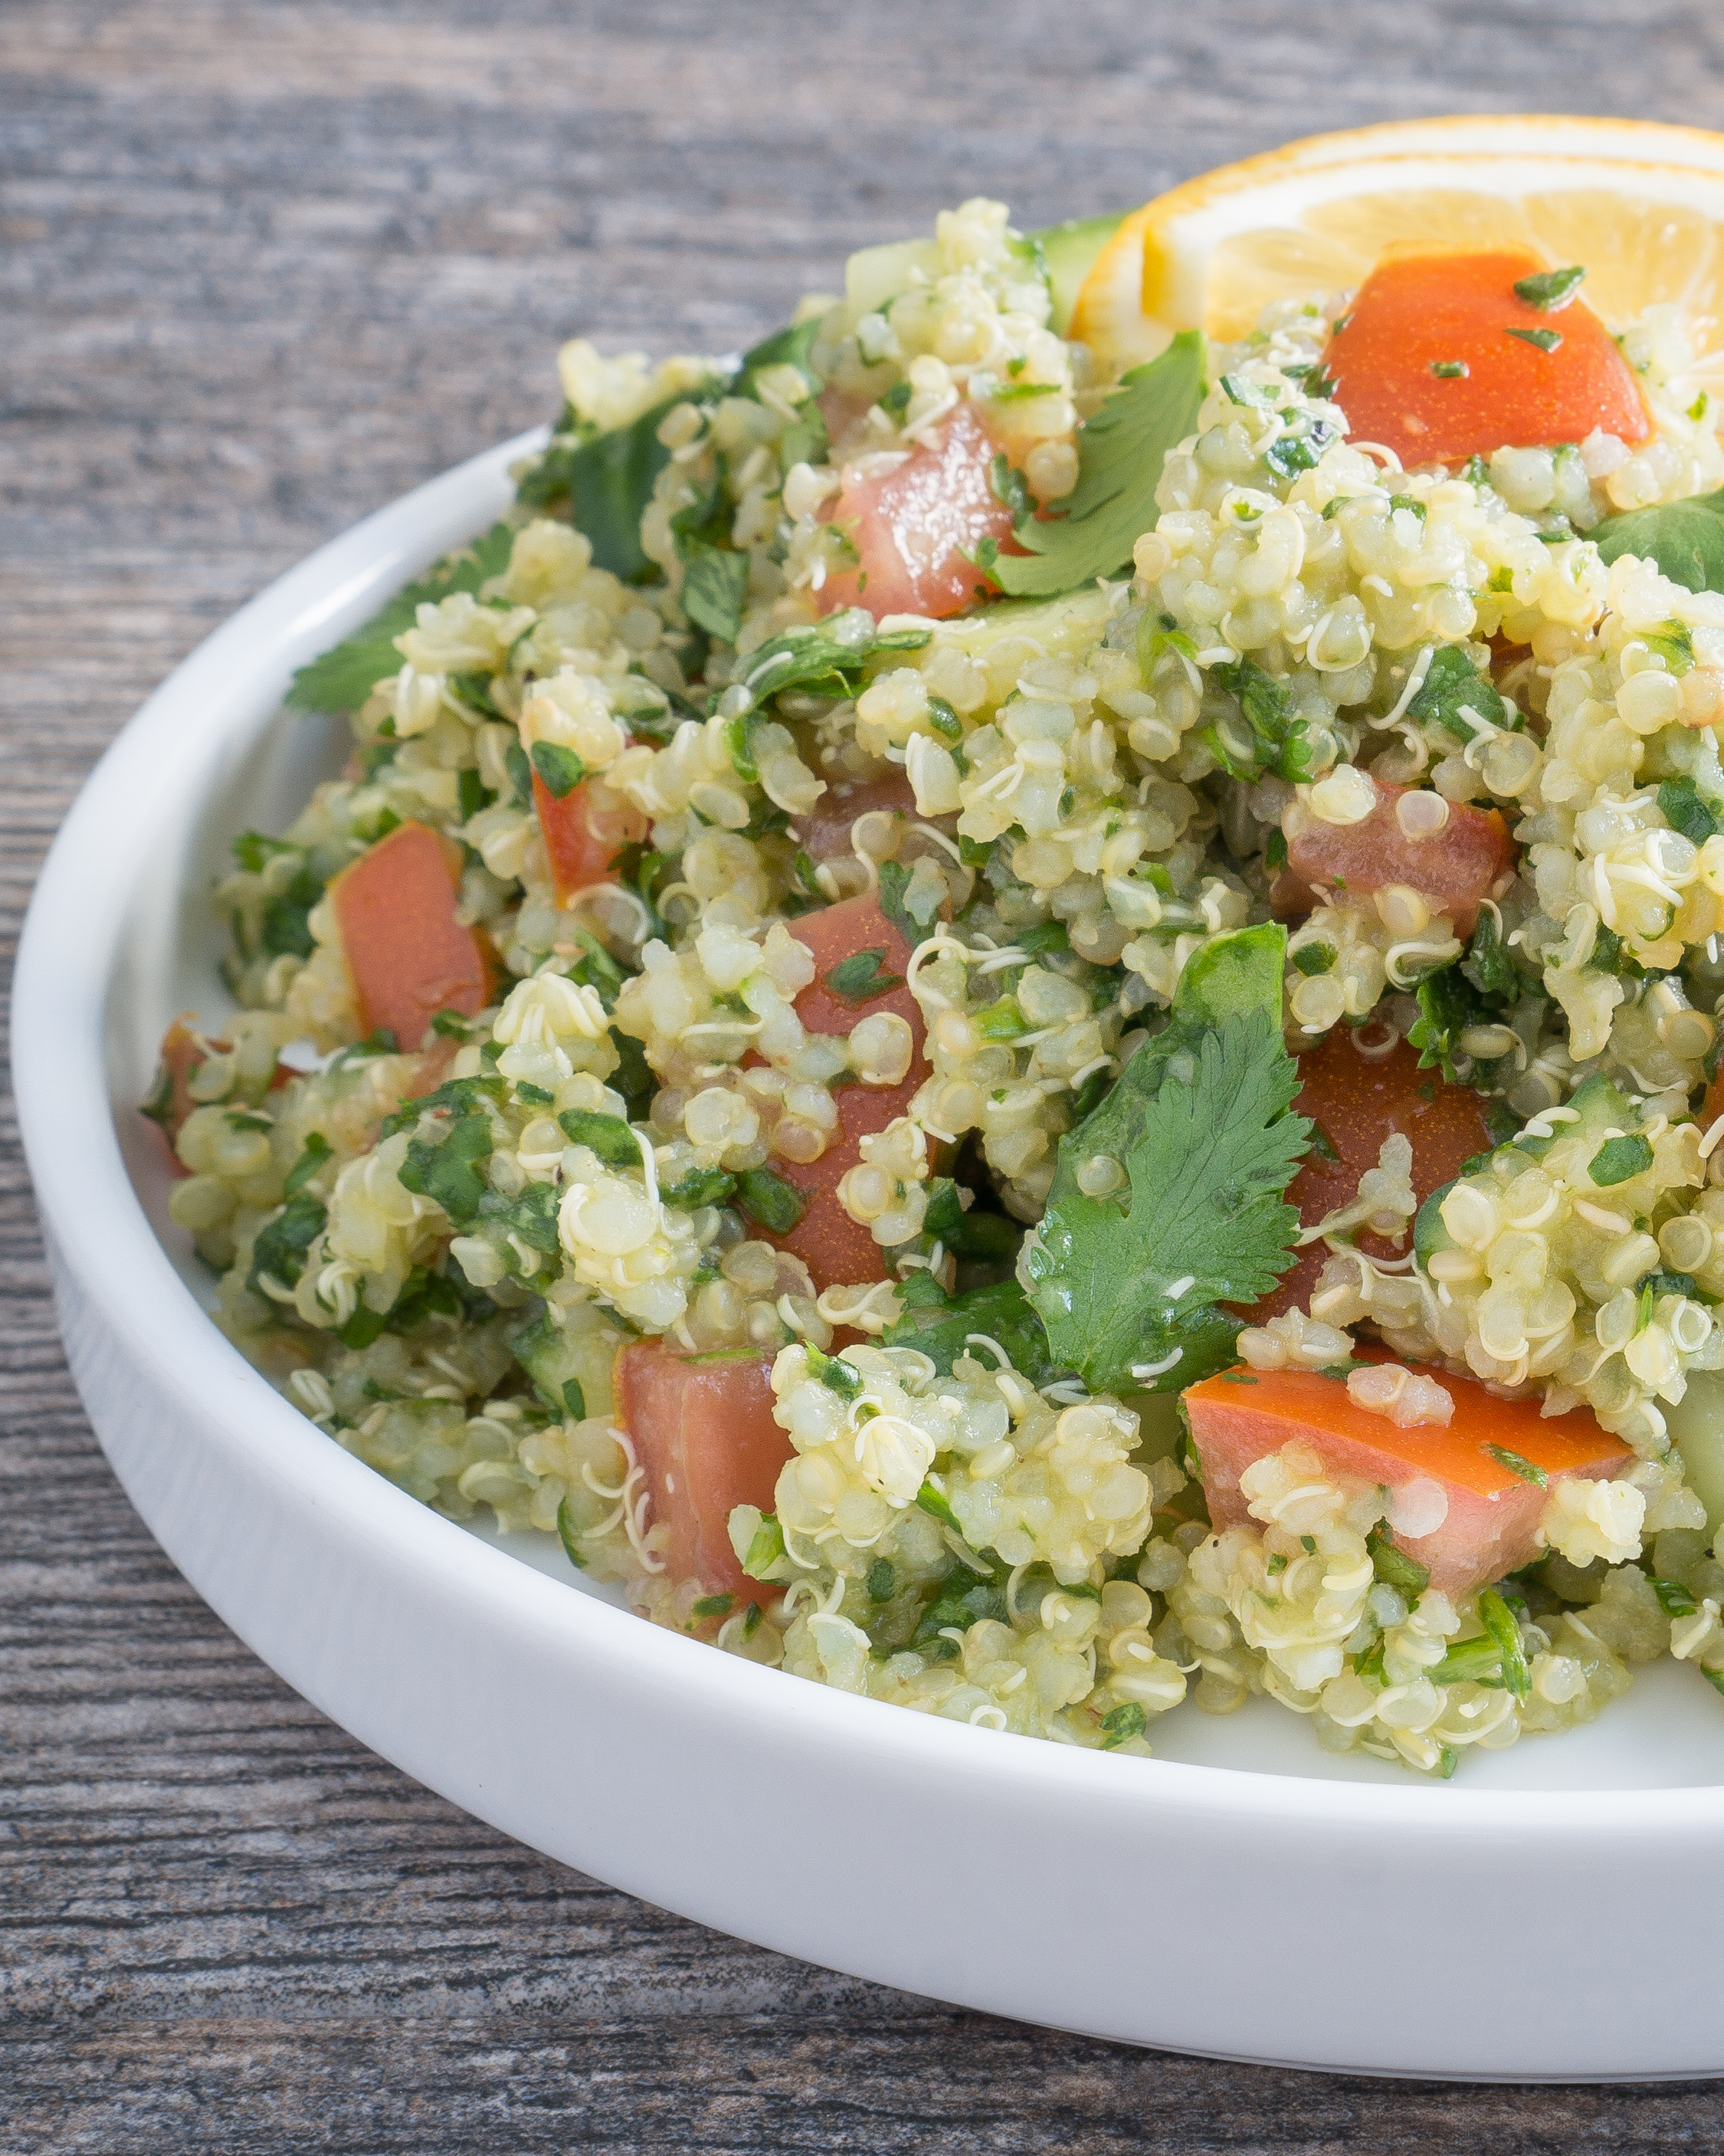 Quinoa Tabbouleh Salad – This Quinoa Tabbouleh Salad is a gluten-free version of the traditional bulgur wheat recipe. This salad has a light lemon & olive oil dressing. Plus it's packed with chopped spinach, fresh parsley, crisp cucumber, tomato, and quinoa! ♥ | freeyourfork.com